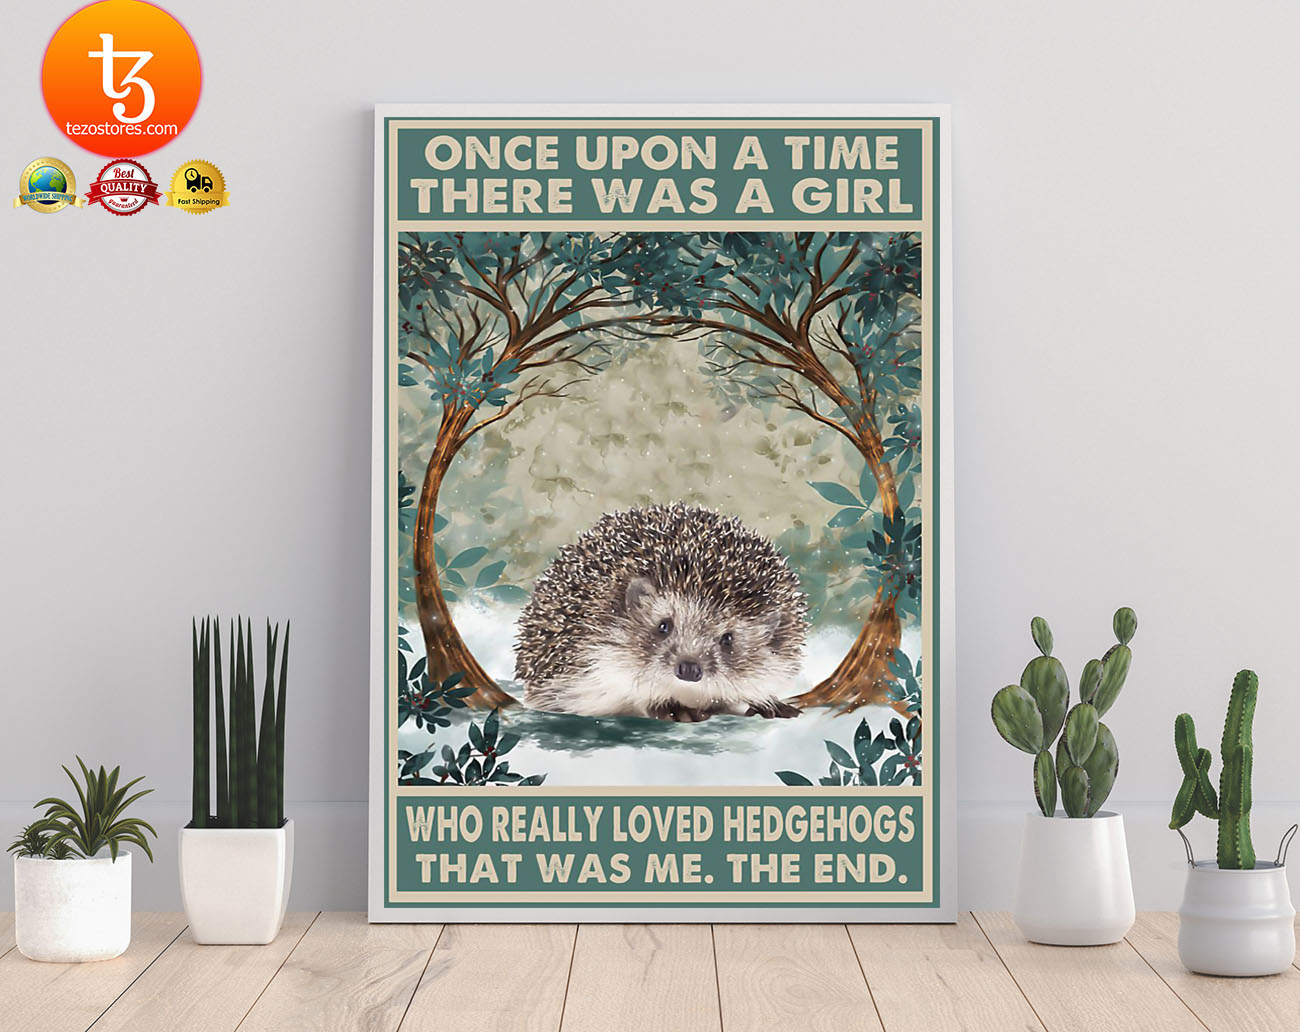 Once upon a time there was a girl who really loved hedgehogs poster